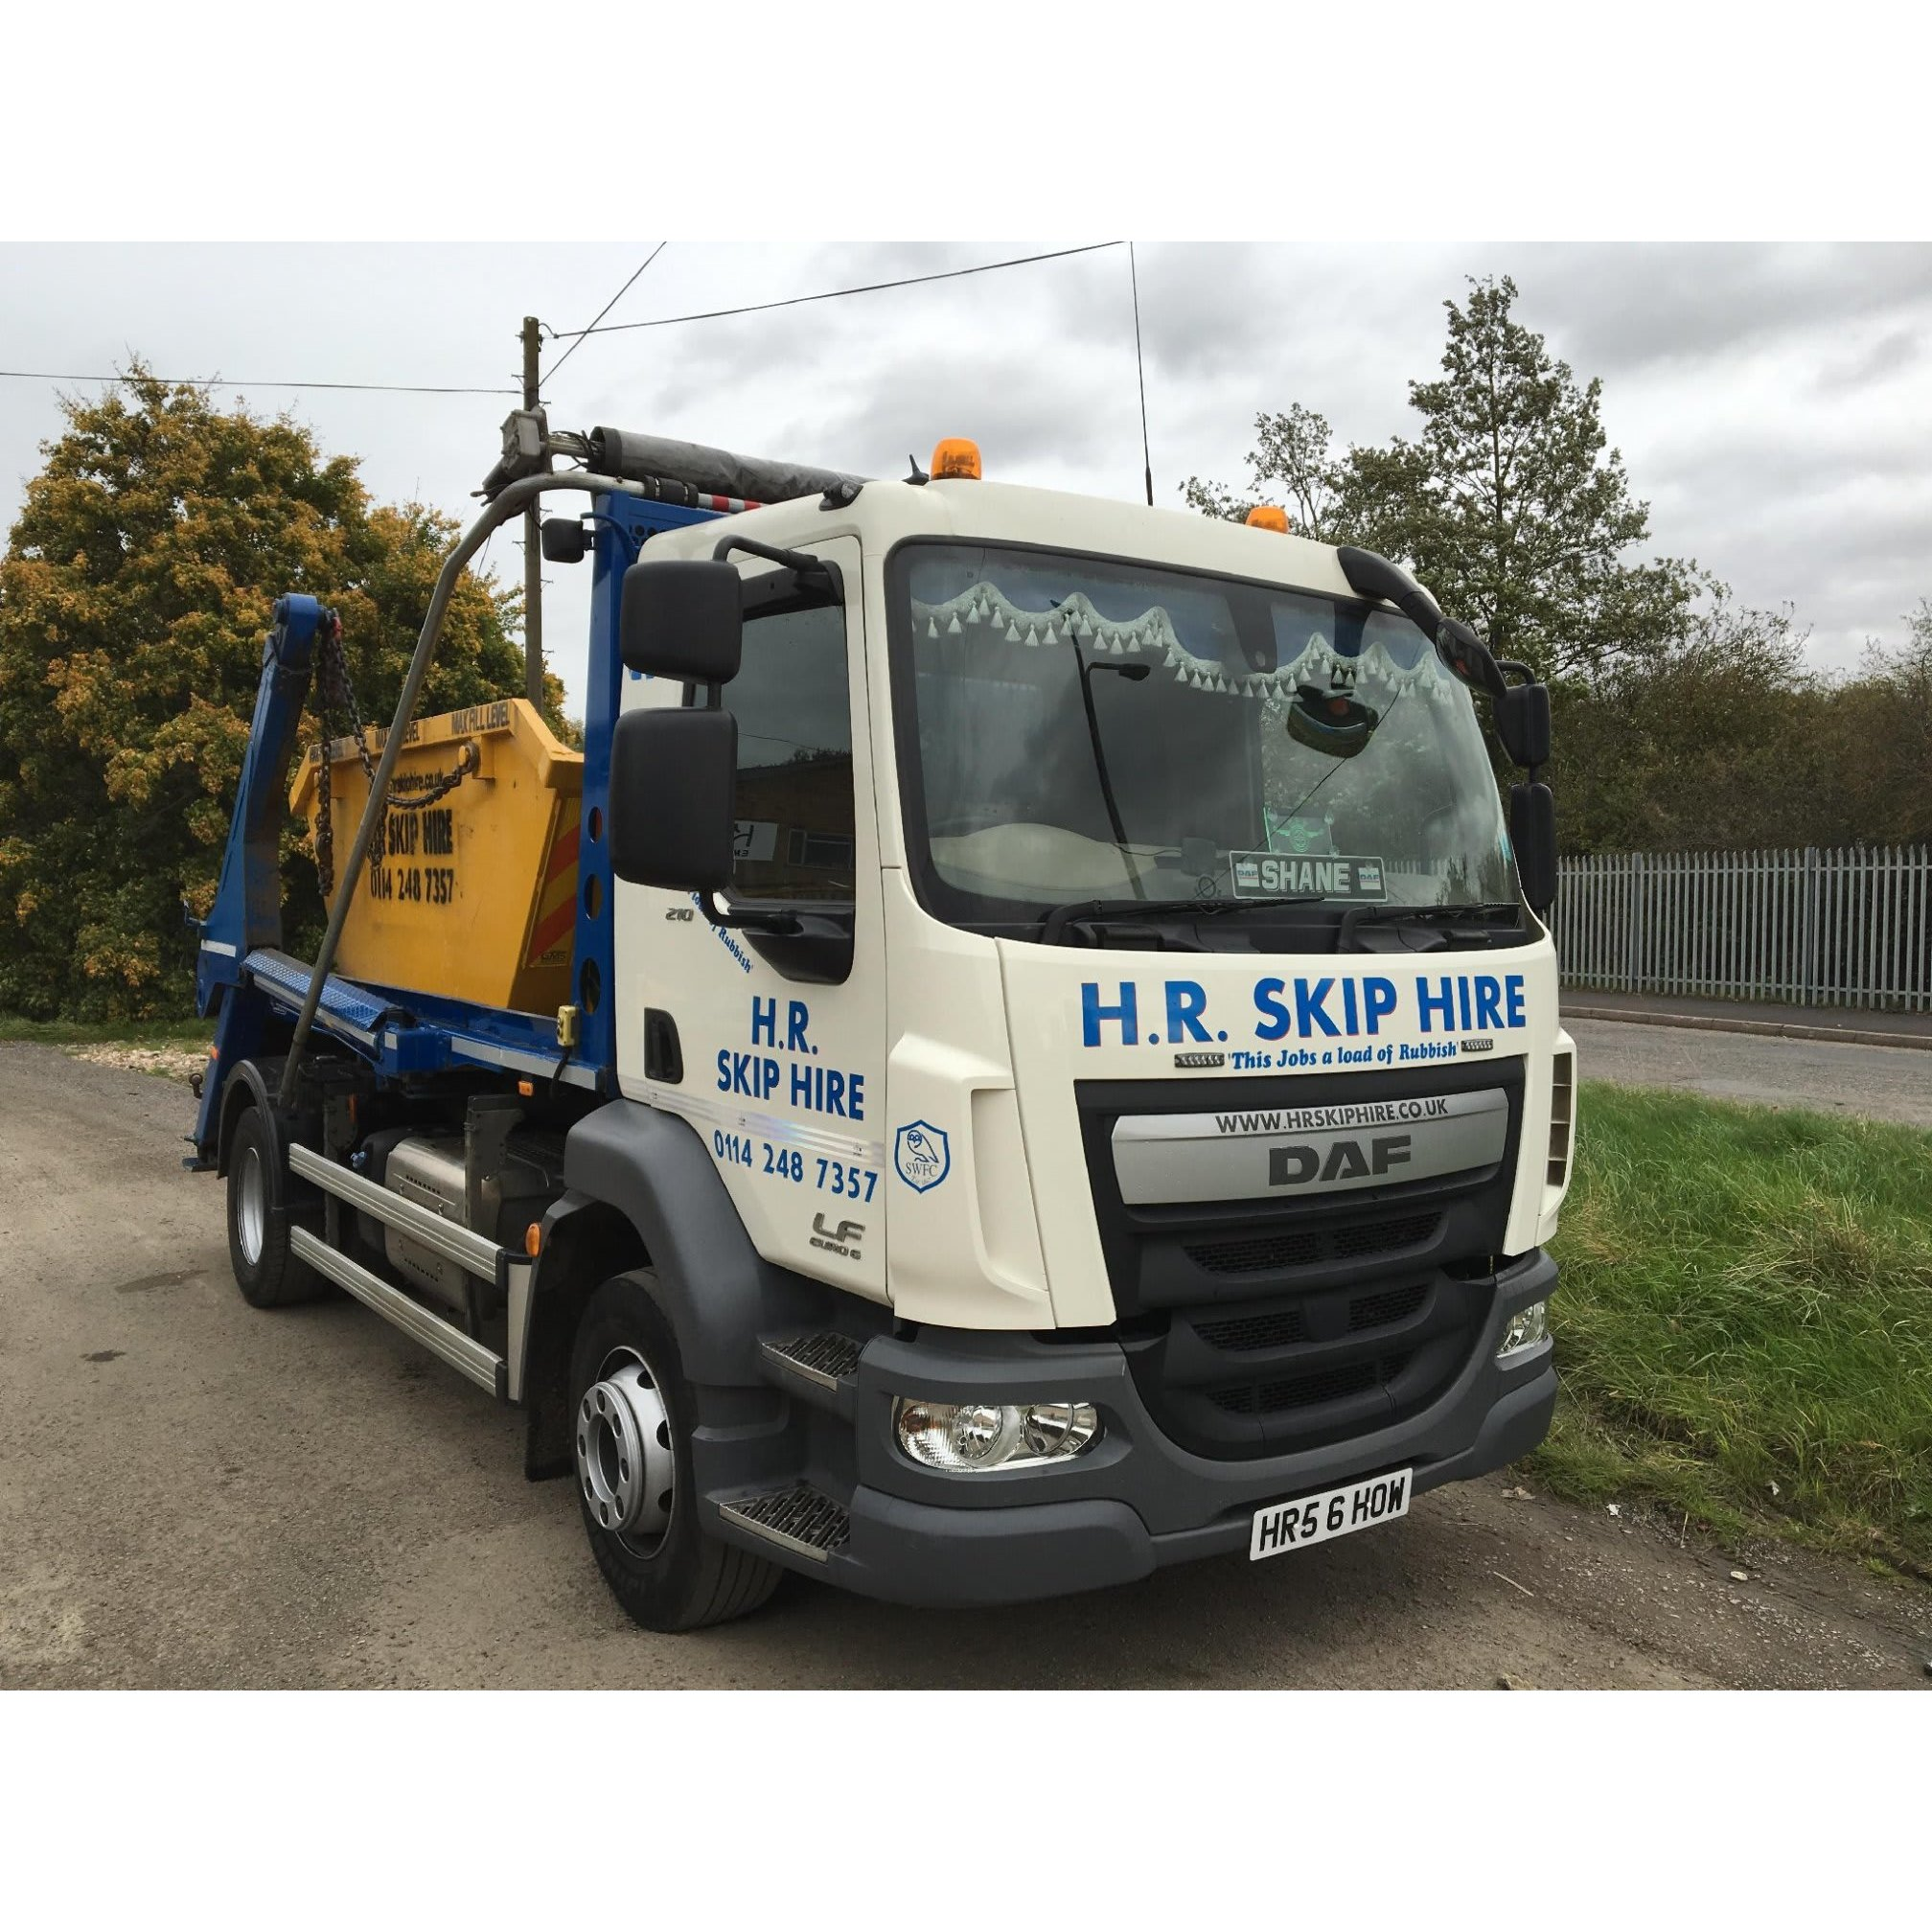 H.R Skip Hire - Sheffield, South Yorkshire S20 3GH - 01142 487357 | ShowMeLocal.com